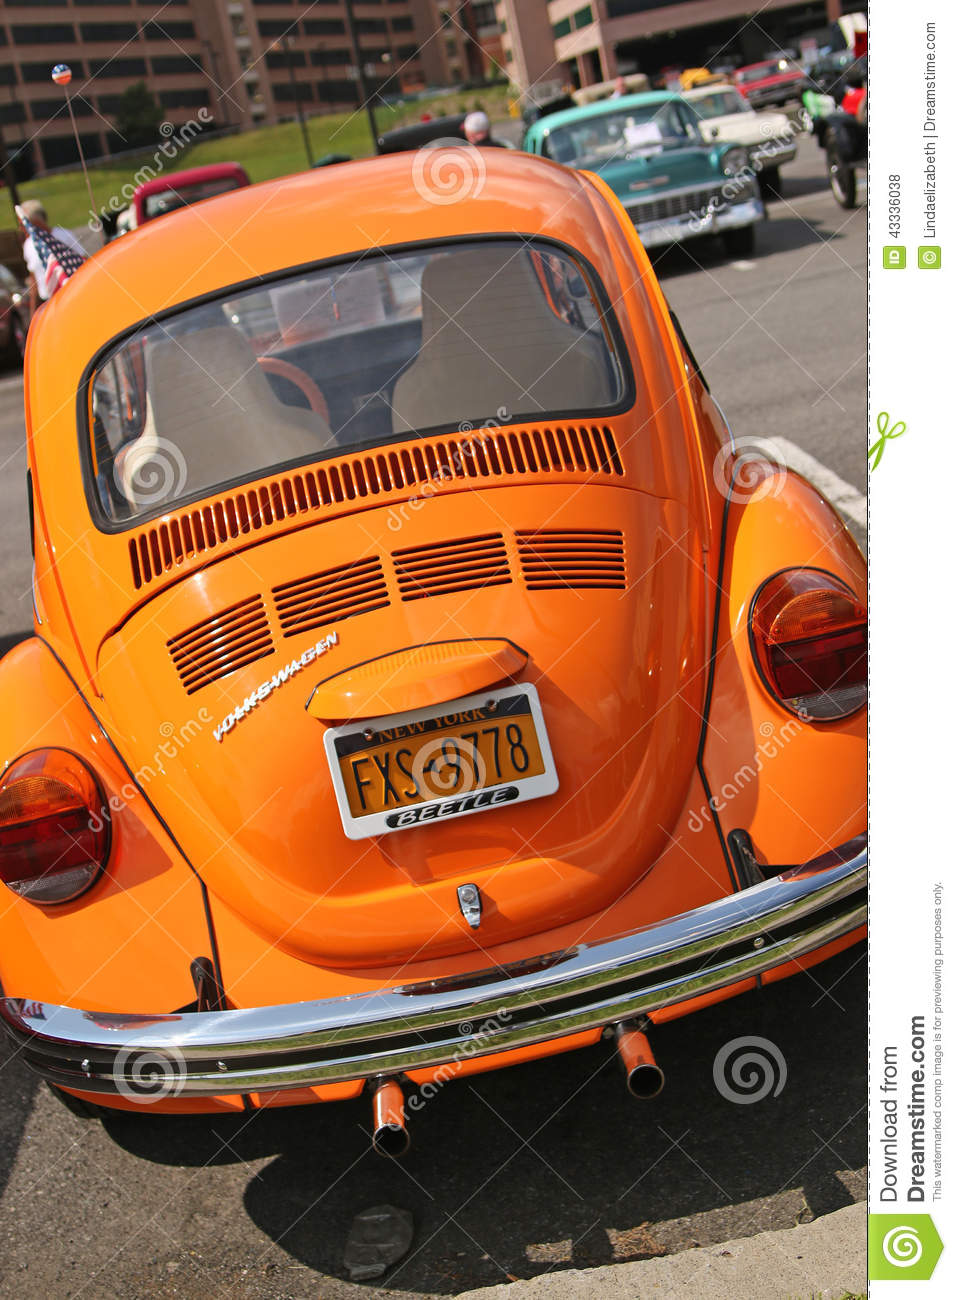 Early 1970s Beetle Editorial Stock Photo - Image: 43336038